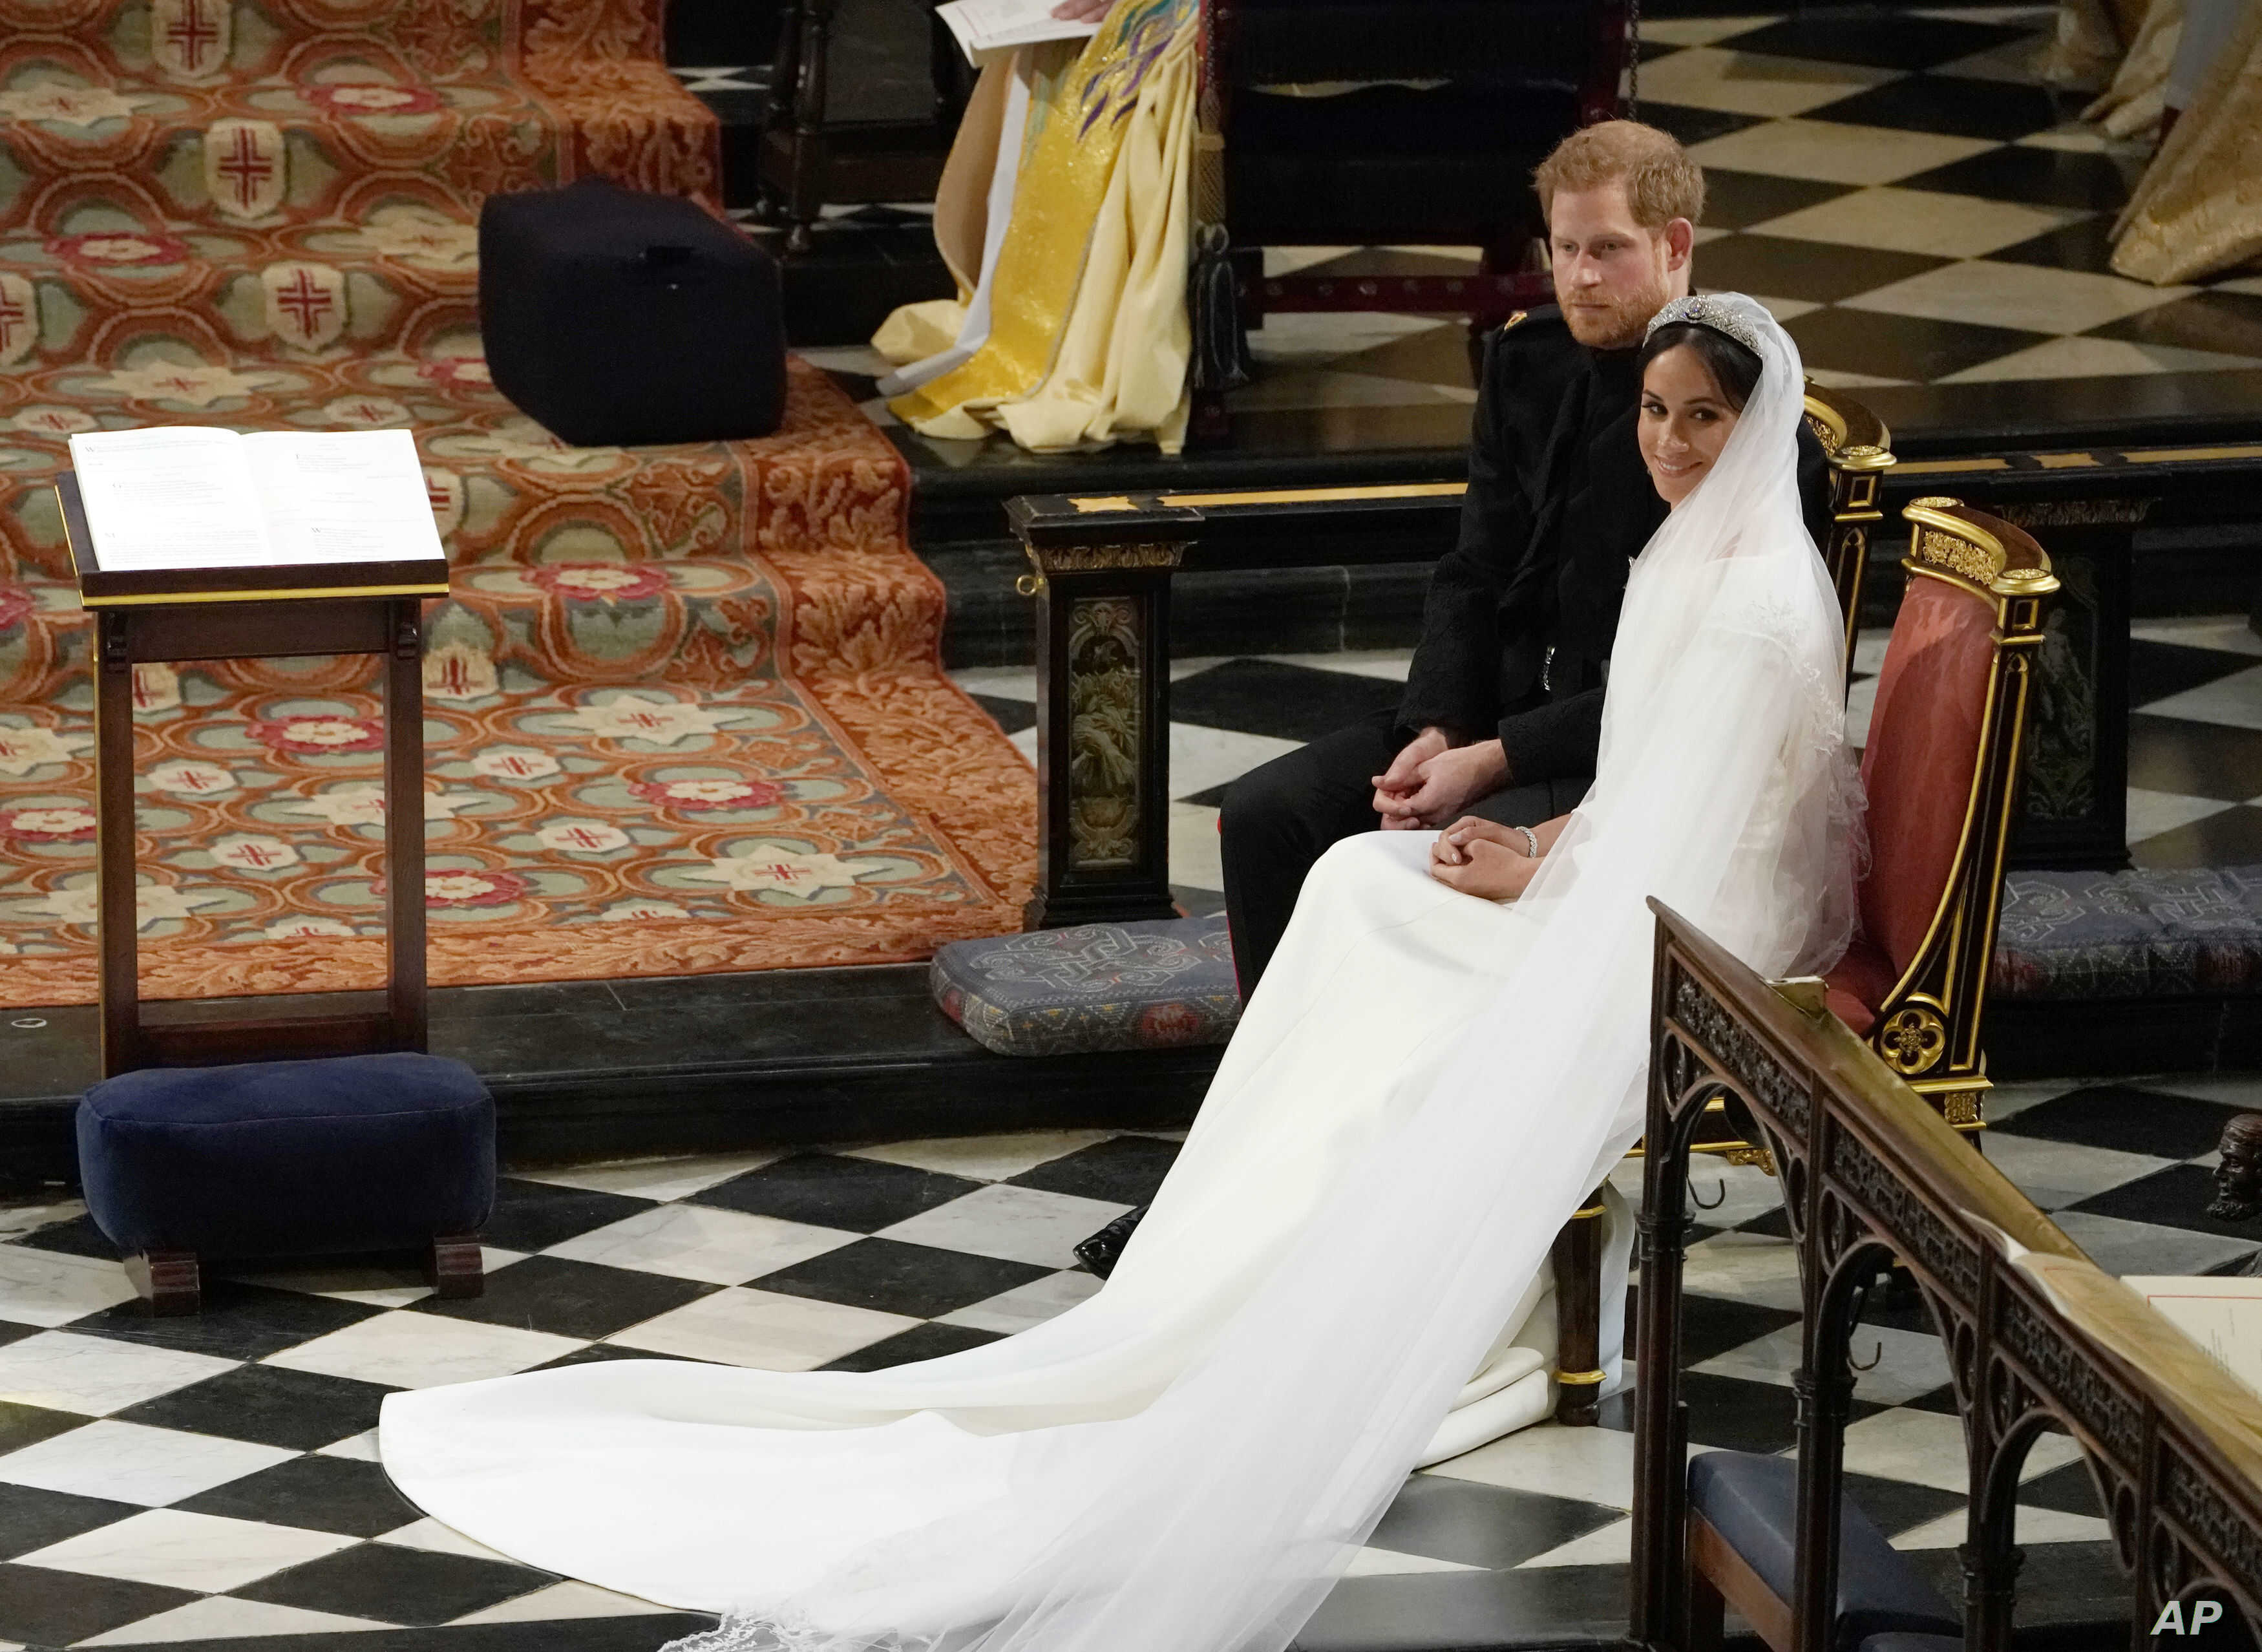 Britain's Prince Harry and Meghan Markle during their wedding at St. George's Chapel in Windsor Castle in Windsor, near London, England, Saturday, May 19, 2018.